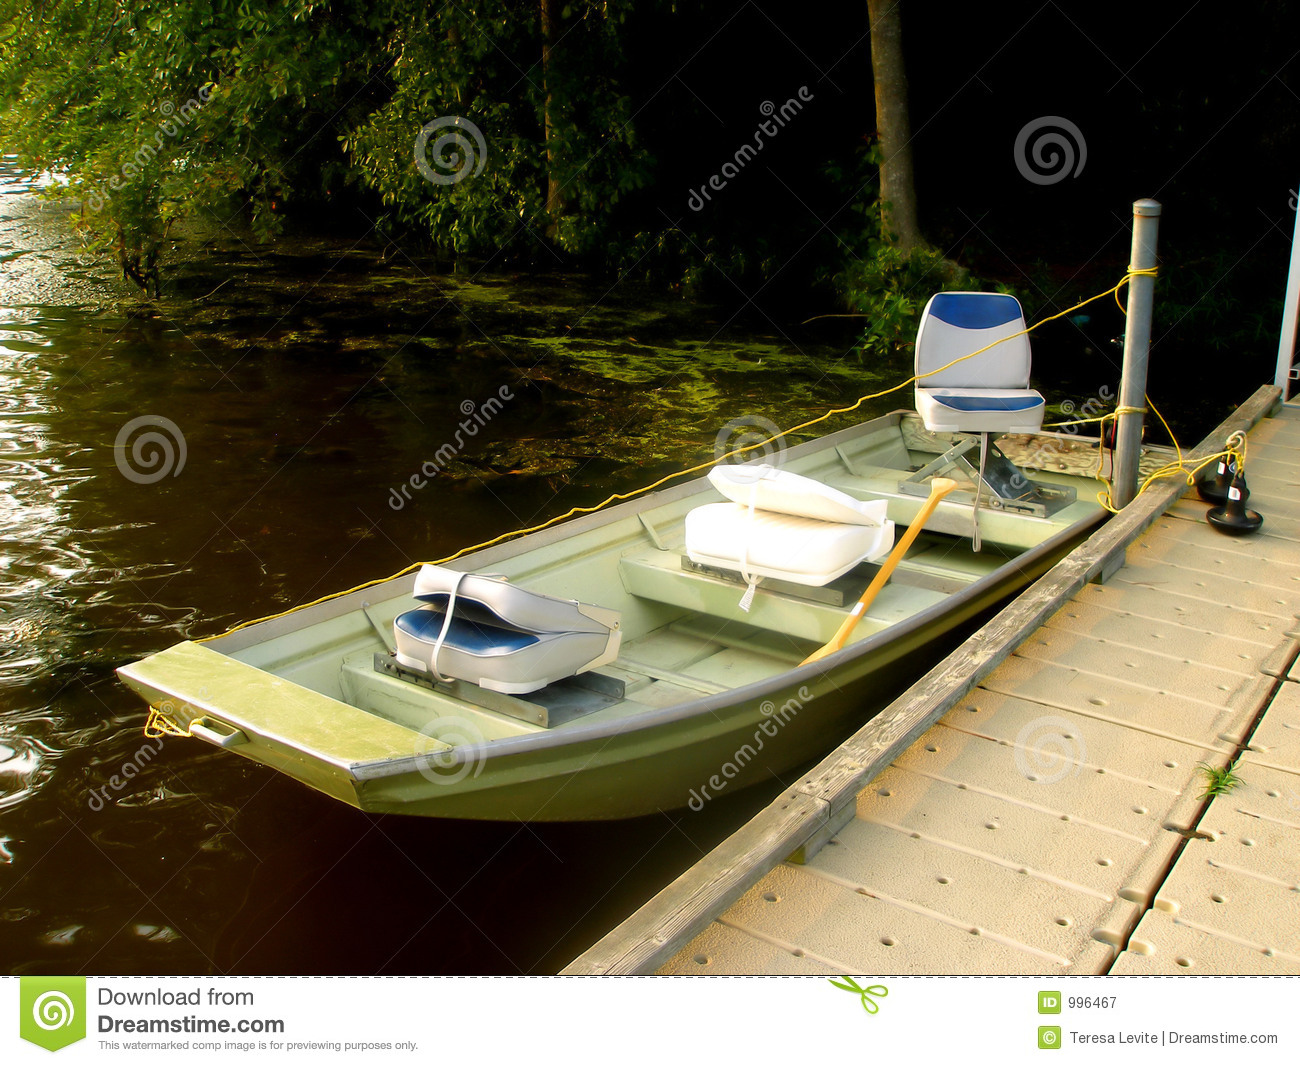 Small sport fishing boat in lake stock image image of for Lake fishing boats